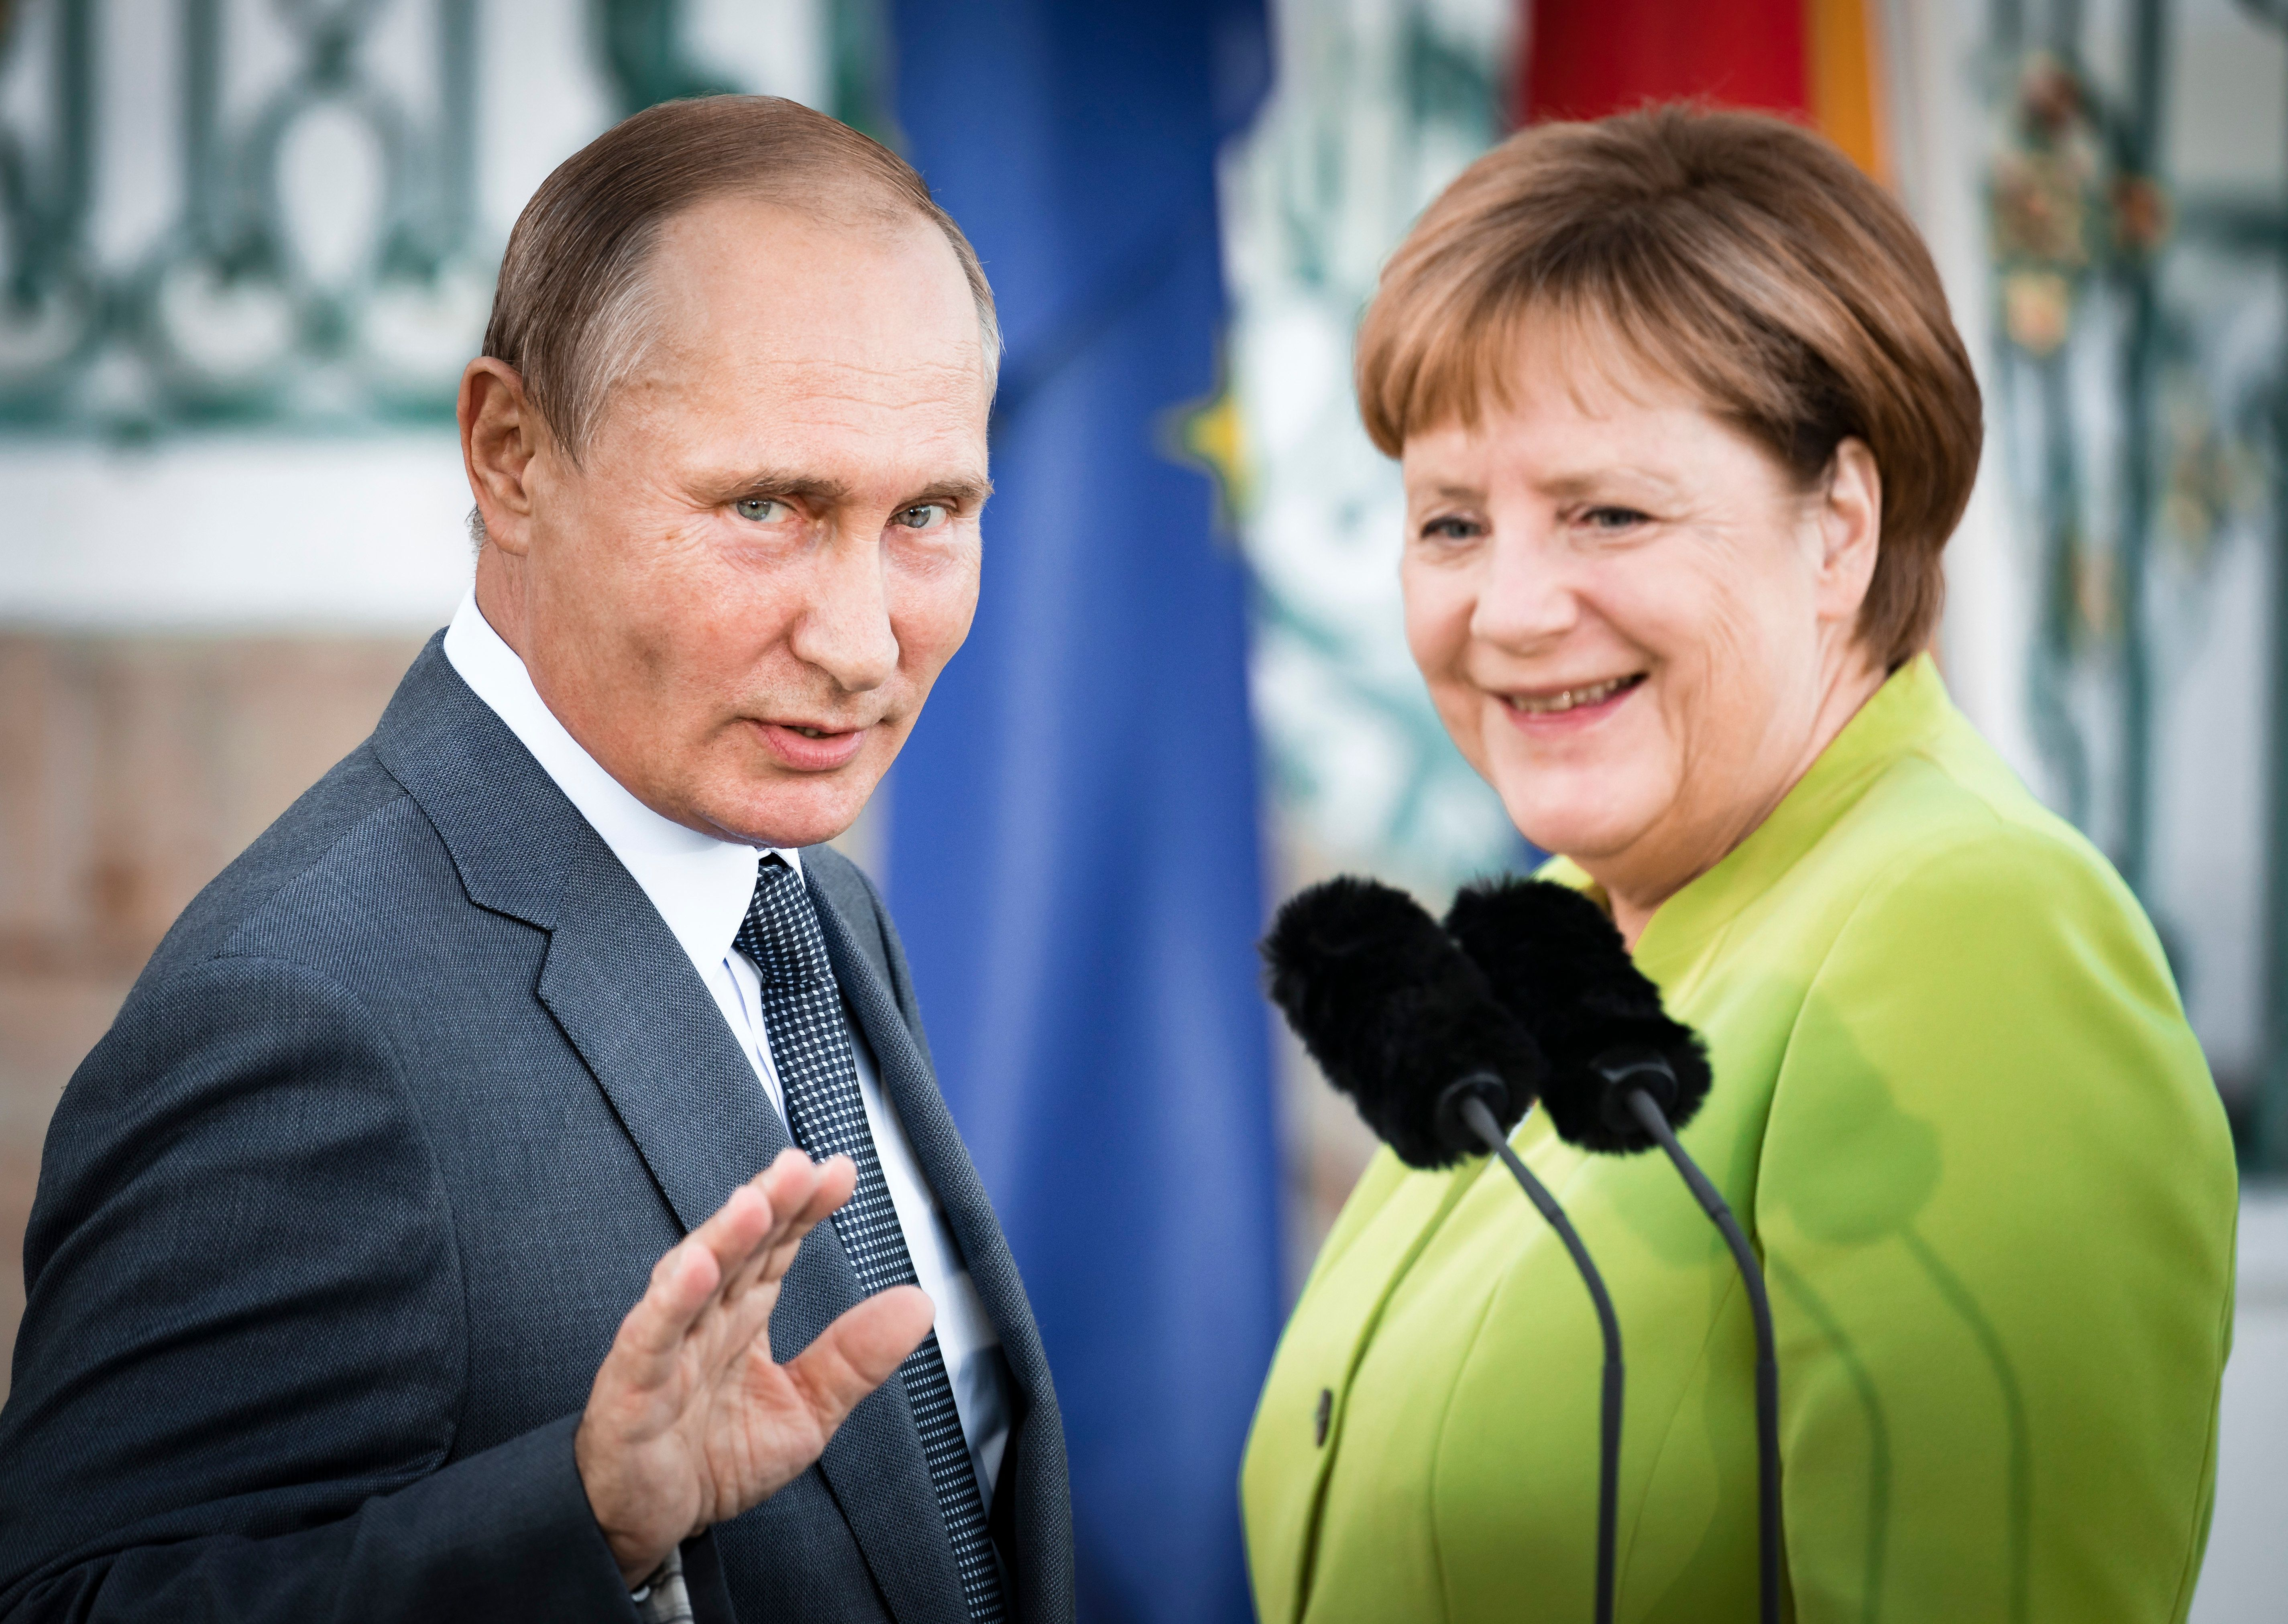 Merkel trifft Putin: Wie die Kanzlerin ihre Politik in drei Stunden verraten